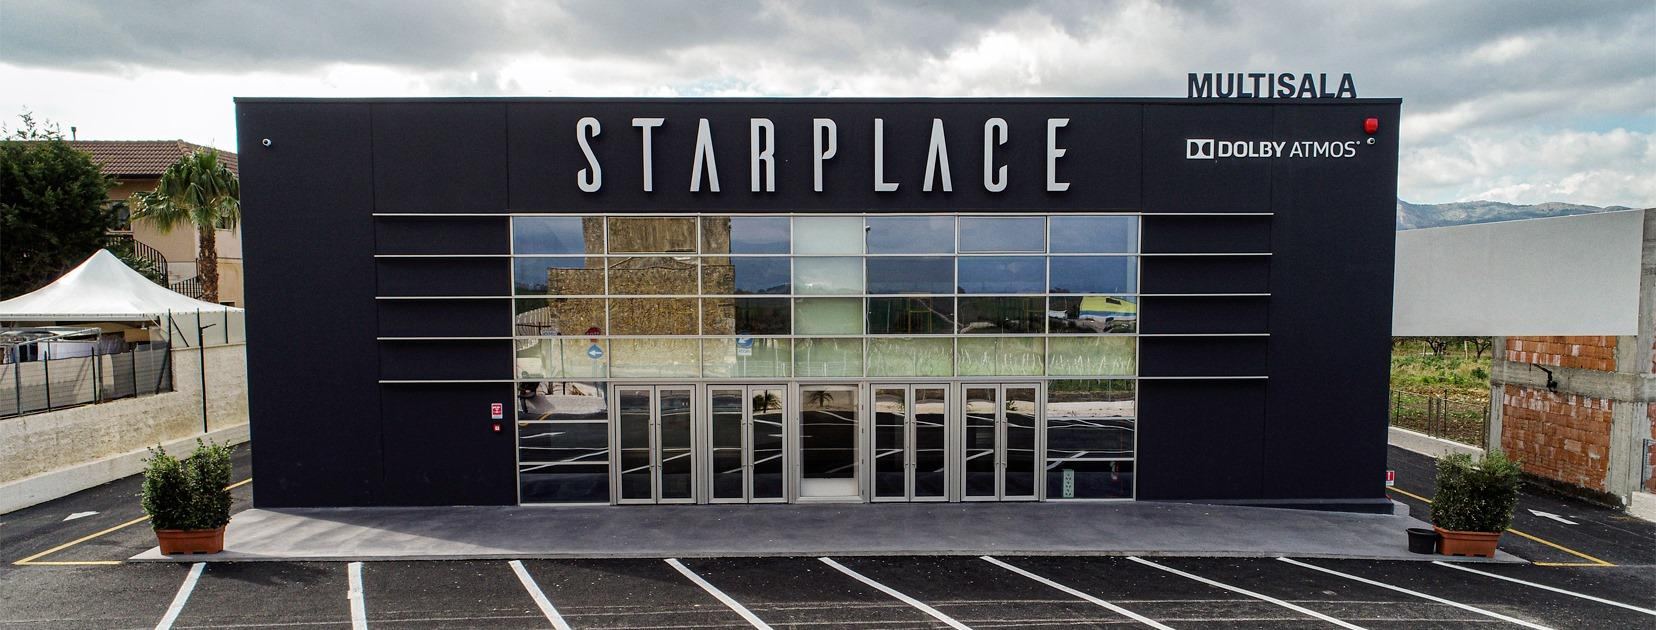 STARPLACE - CINEMA ESPERIA - Alcamo